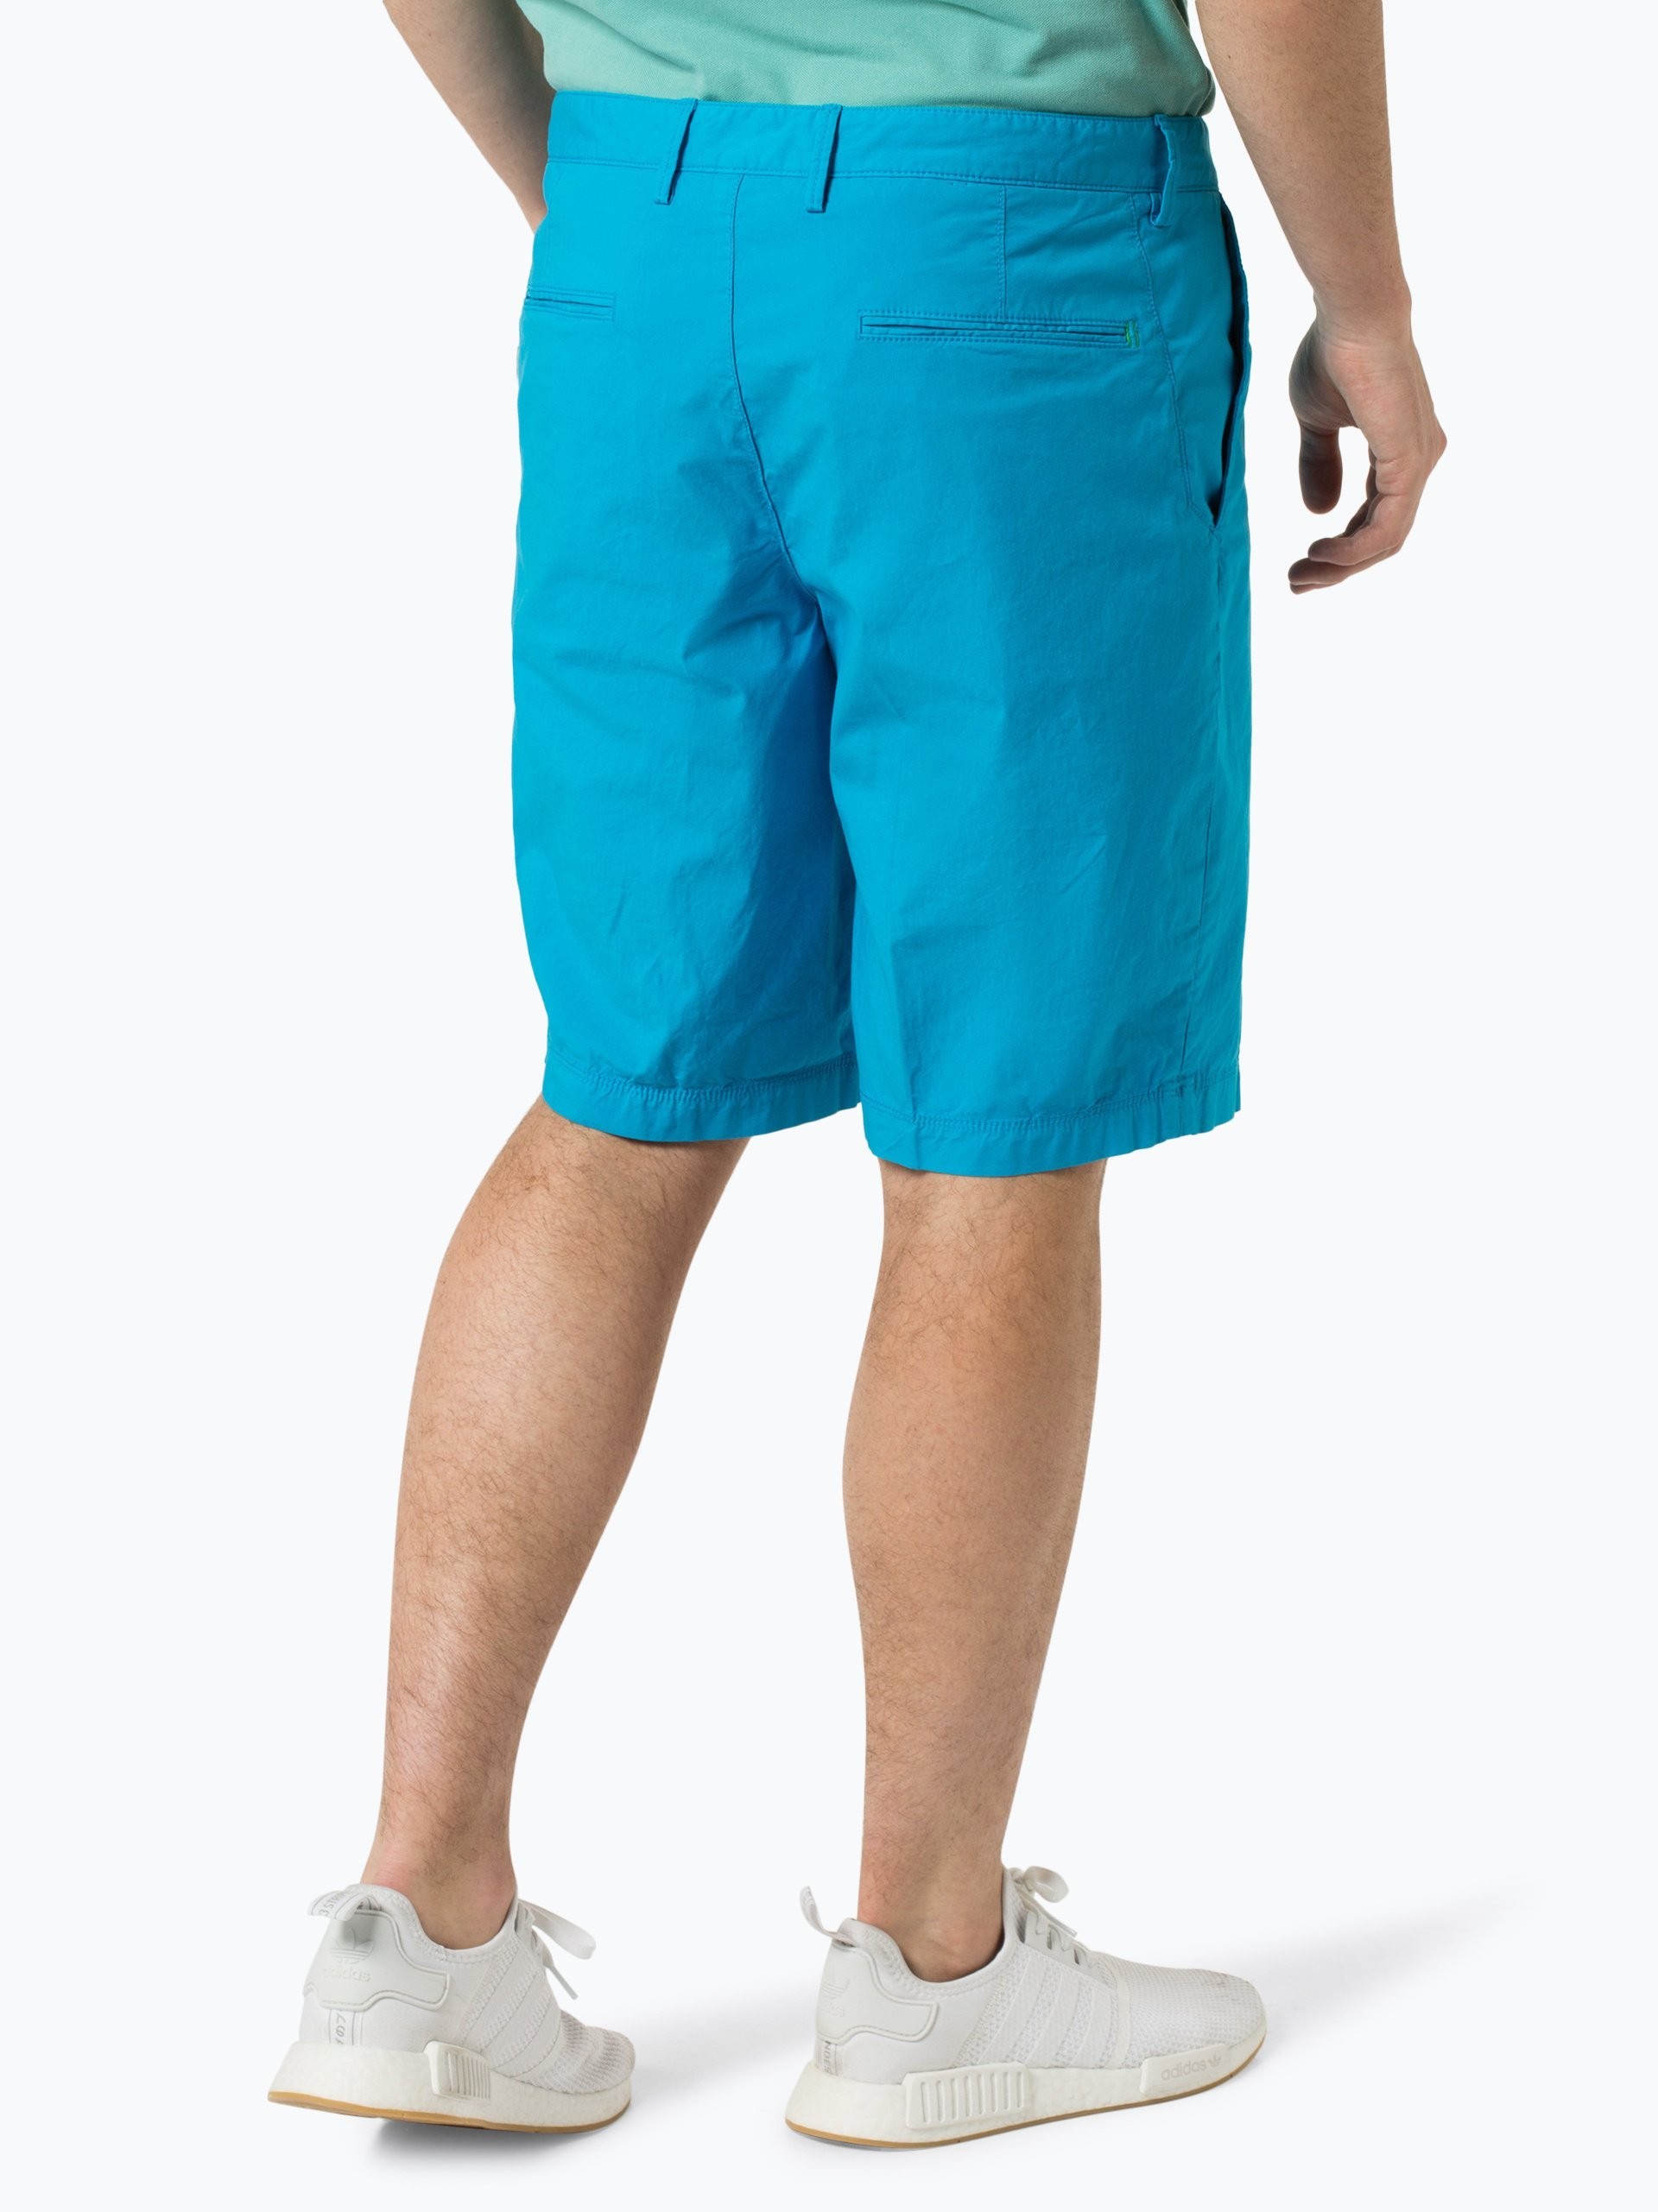 BOSS Athleisure Herren Shorts - Bright-D